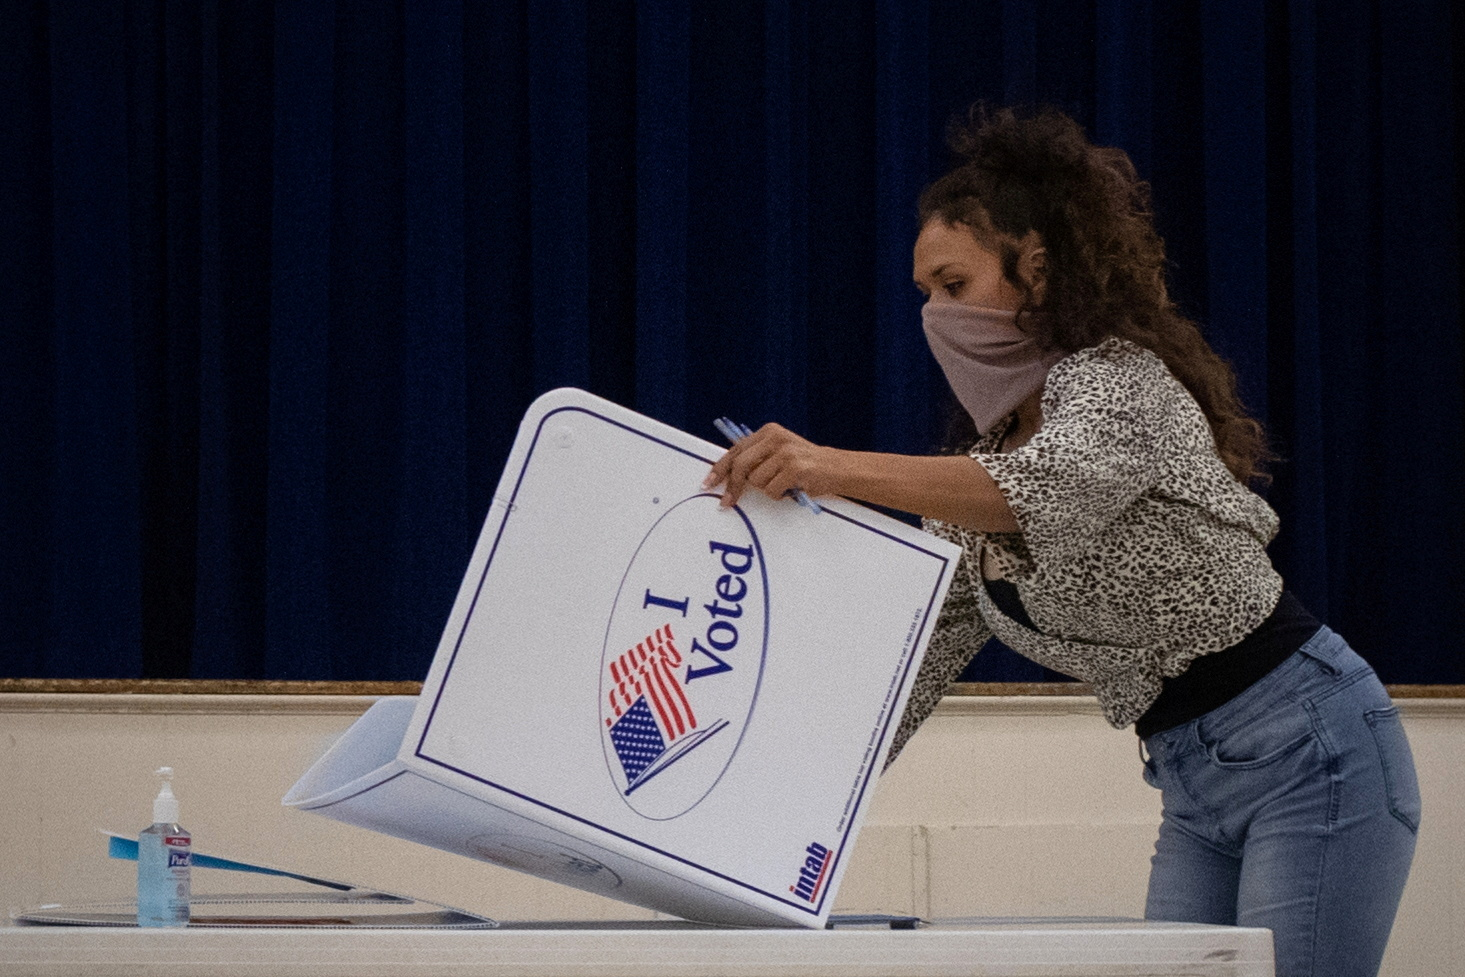 Presidio County election judge Lauren Martinez folds a booth after polls and voting ended for the 2020 U.S. presidential election in Marfa, Texas, U.S., November 3, 2020. REUTERS/Adrees Latif/File Photo